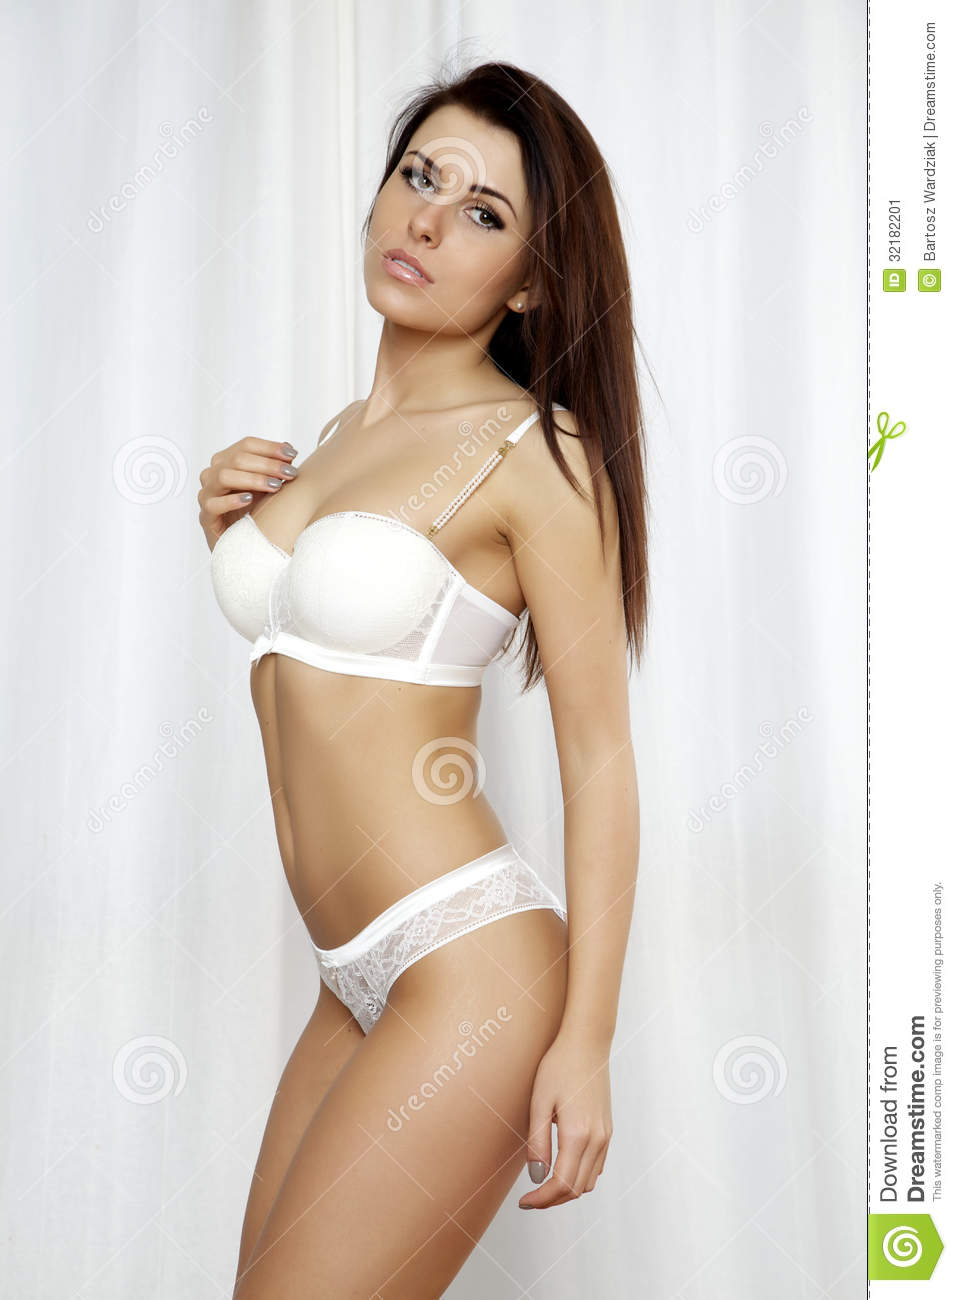 Young Slim Sexy Woman In Lingerie Stock Image